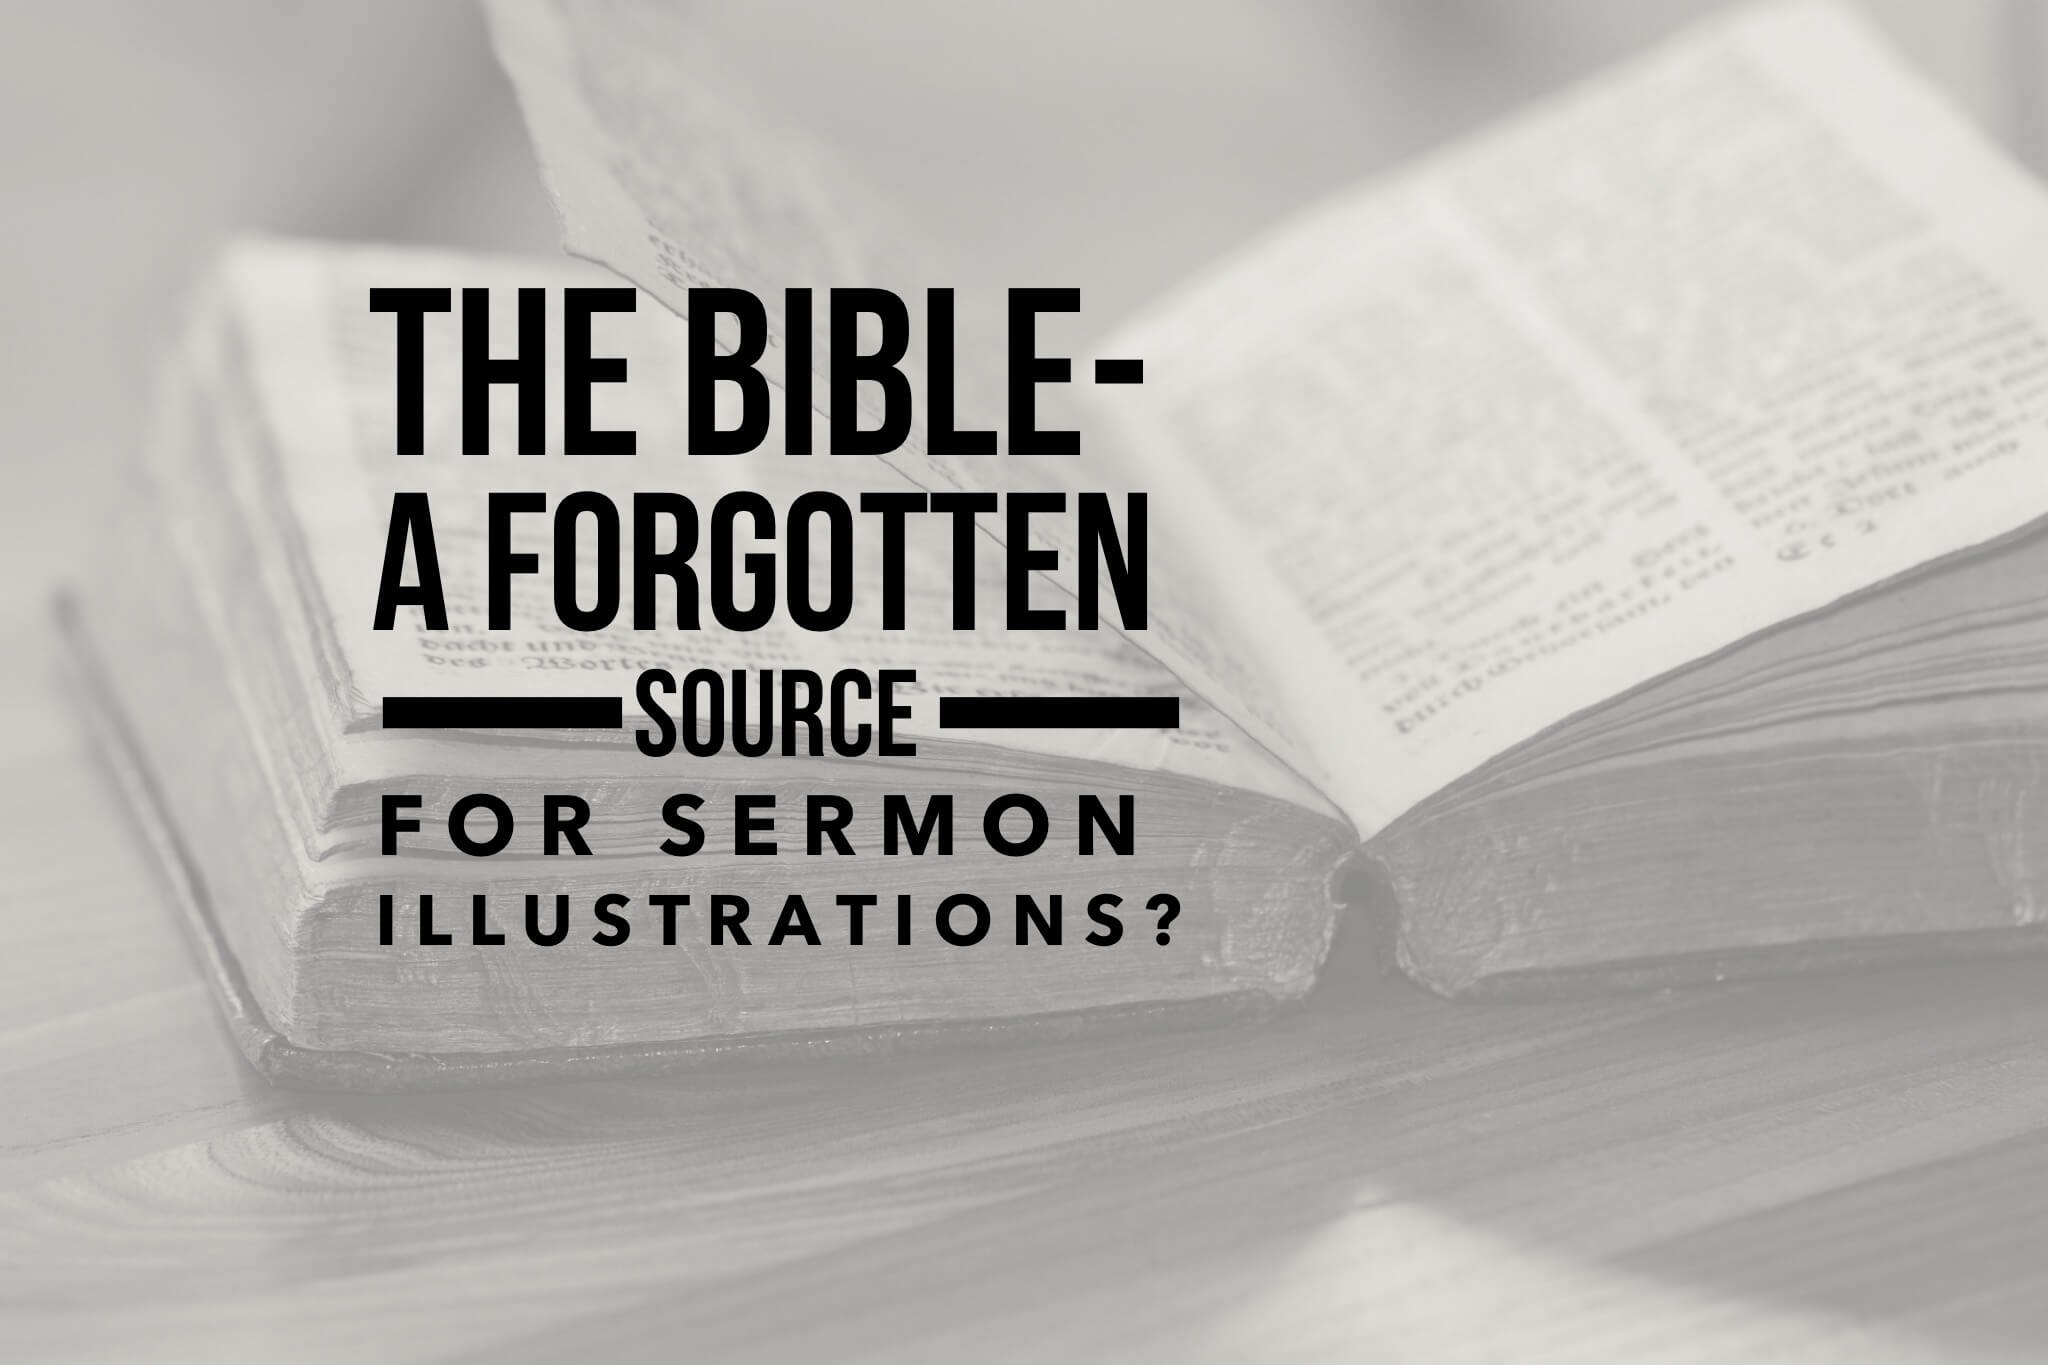 The Bible - A Forgotten Source For Sermon Illustrations